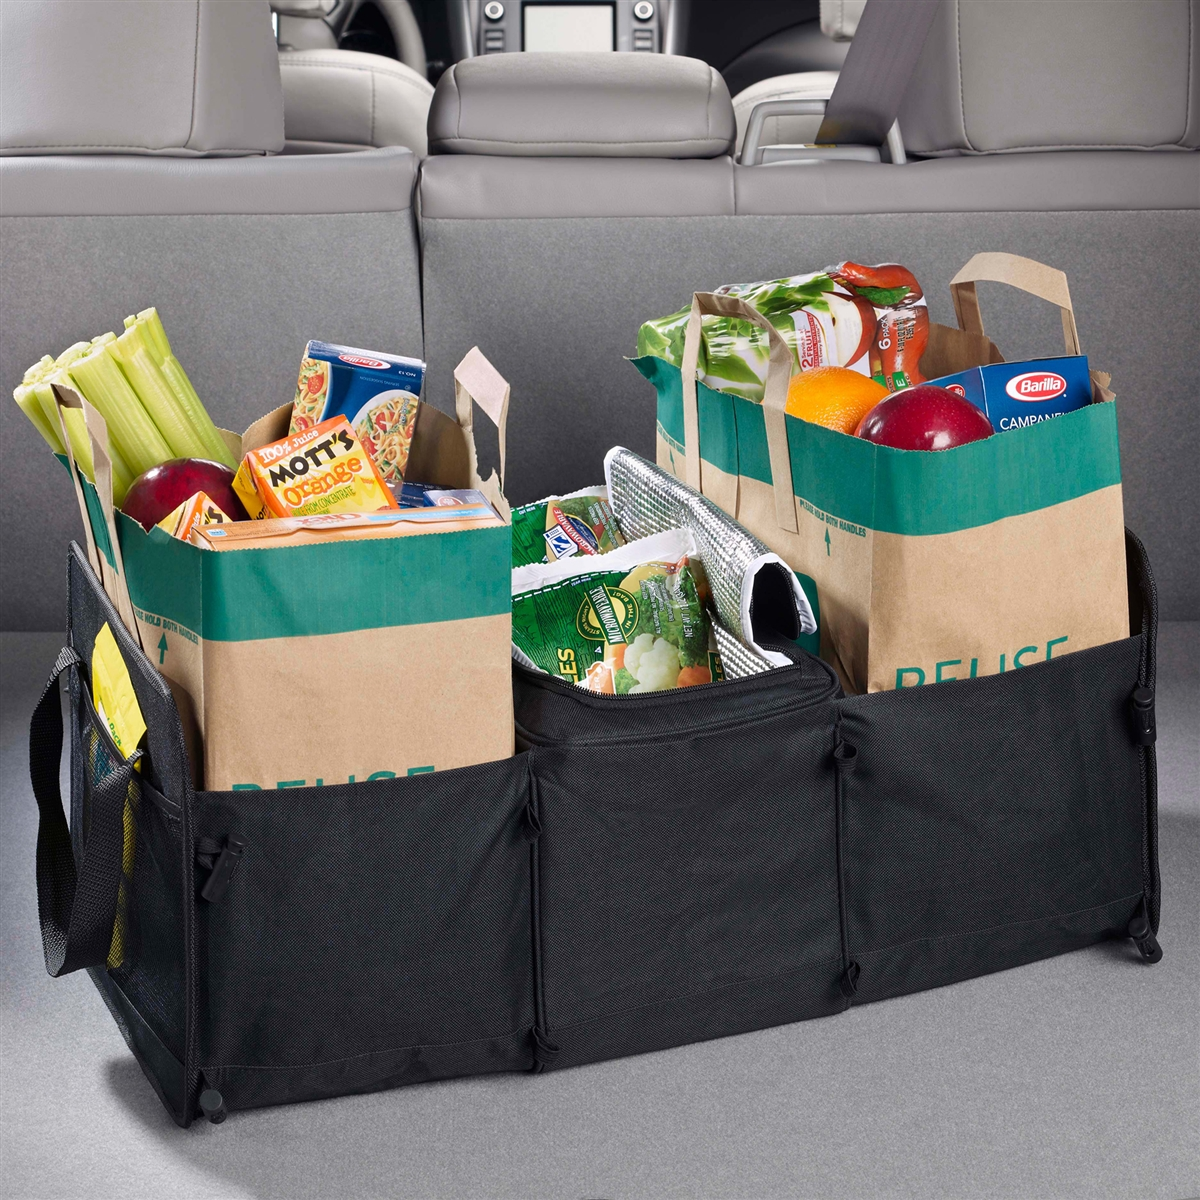 Cool Nride Car Trunk Organizer With Cooler Collapsible